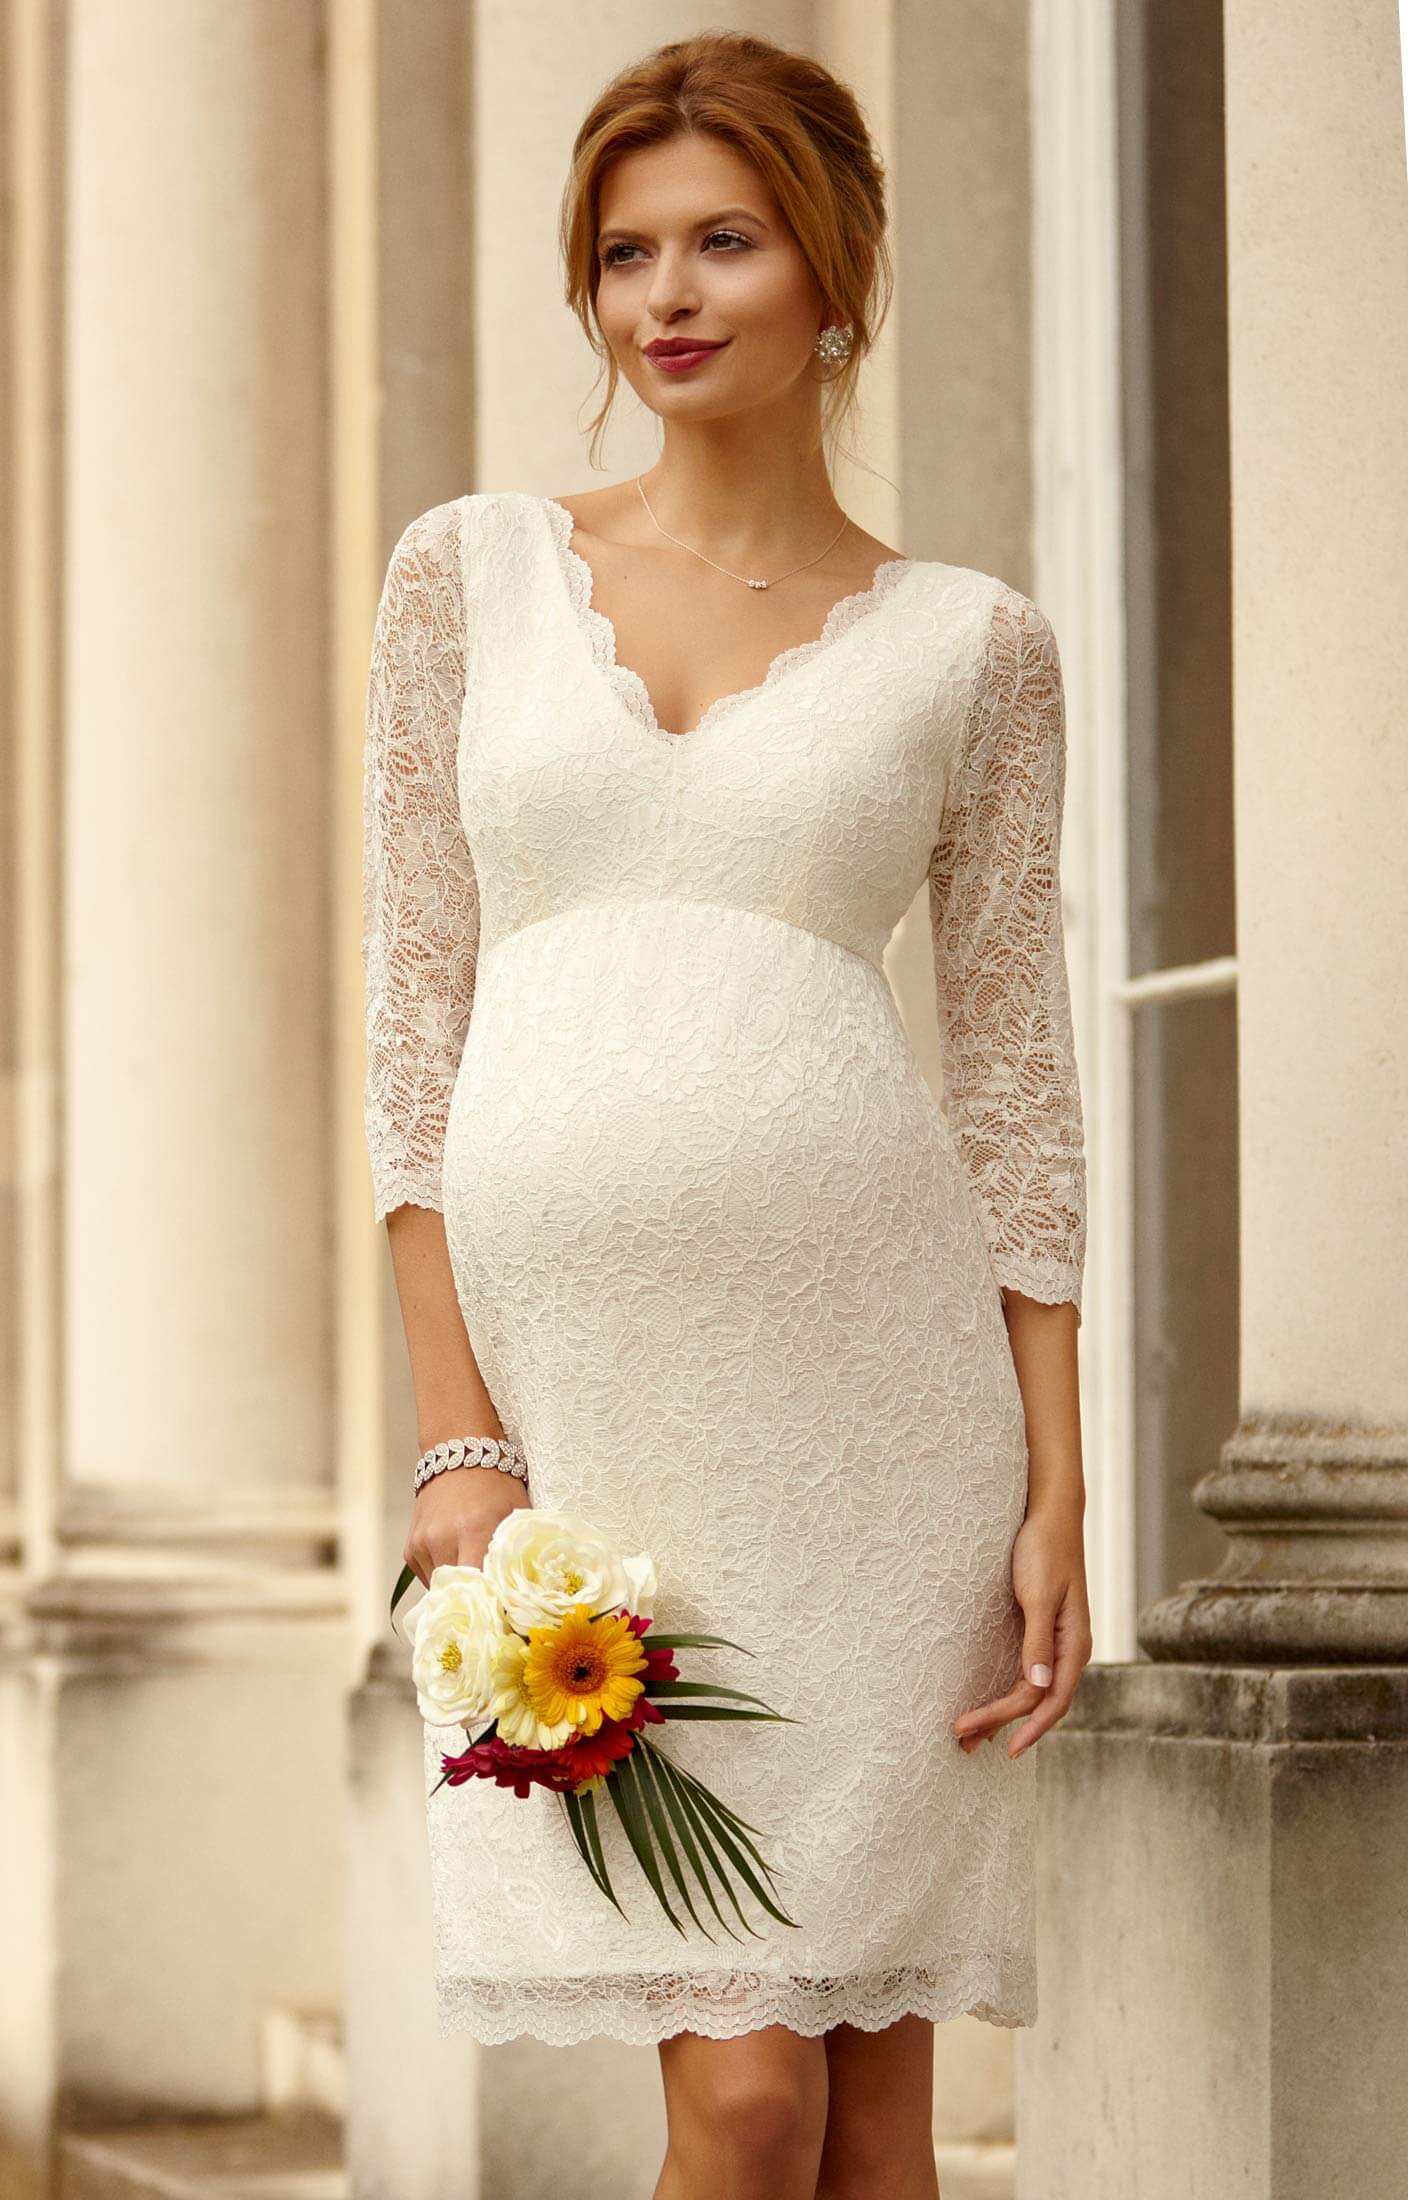 Modern wedding dresses for young: Maternity bridesmaid dresses ottawa